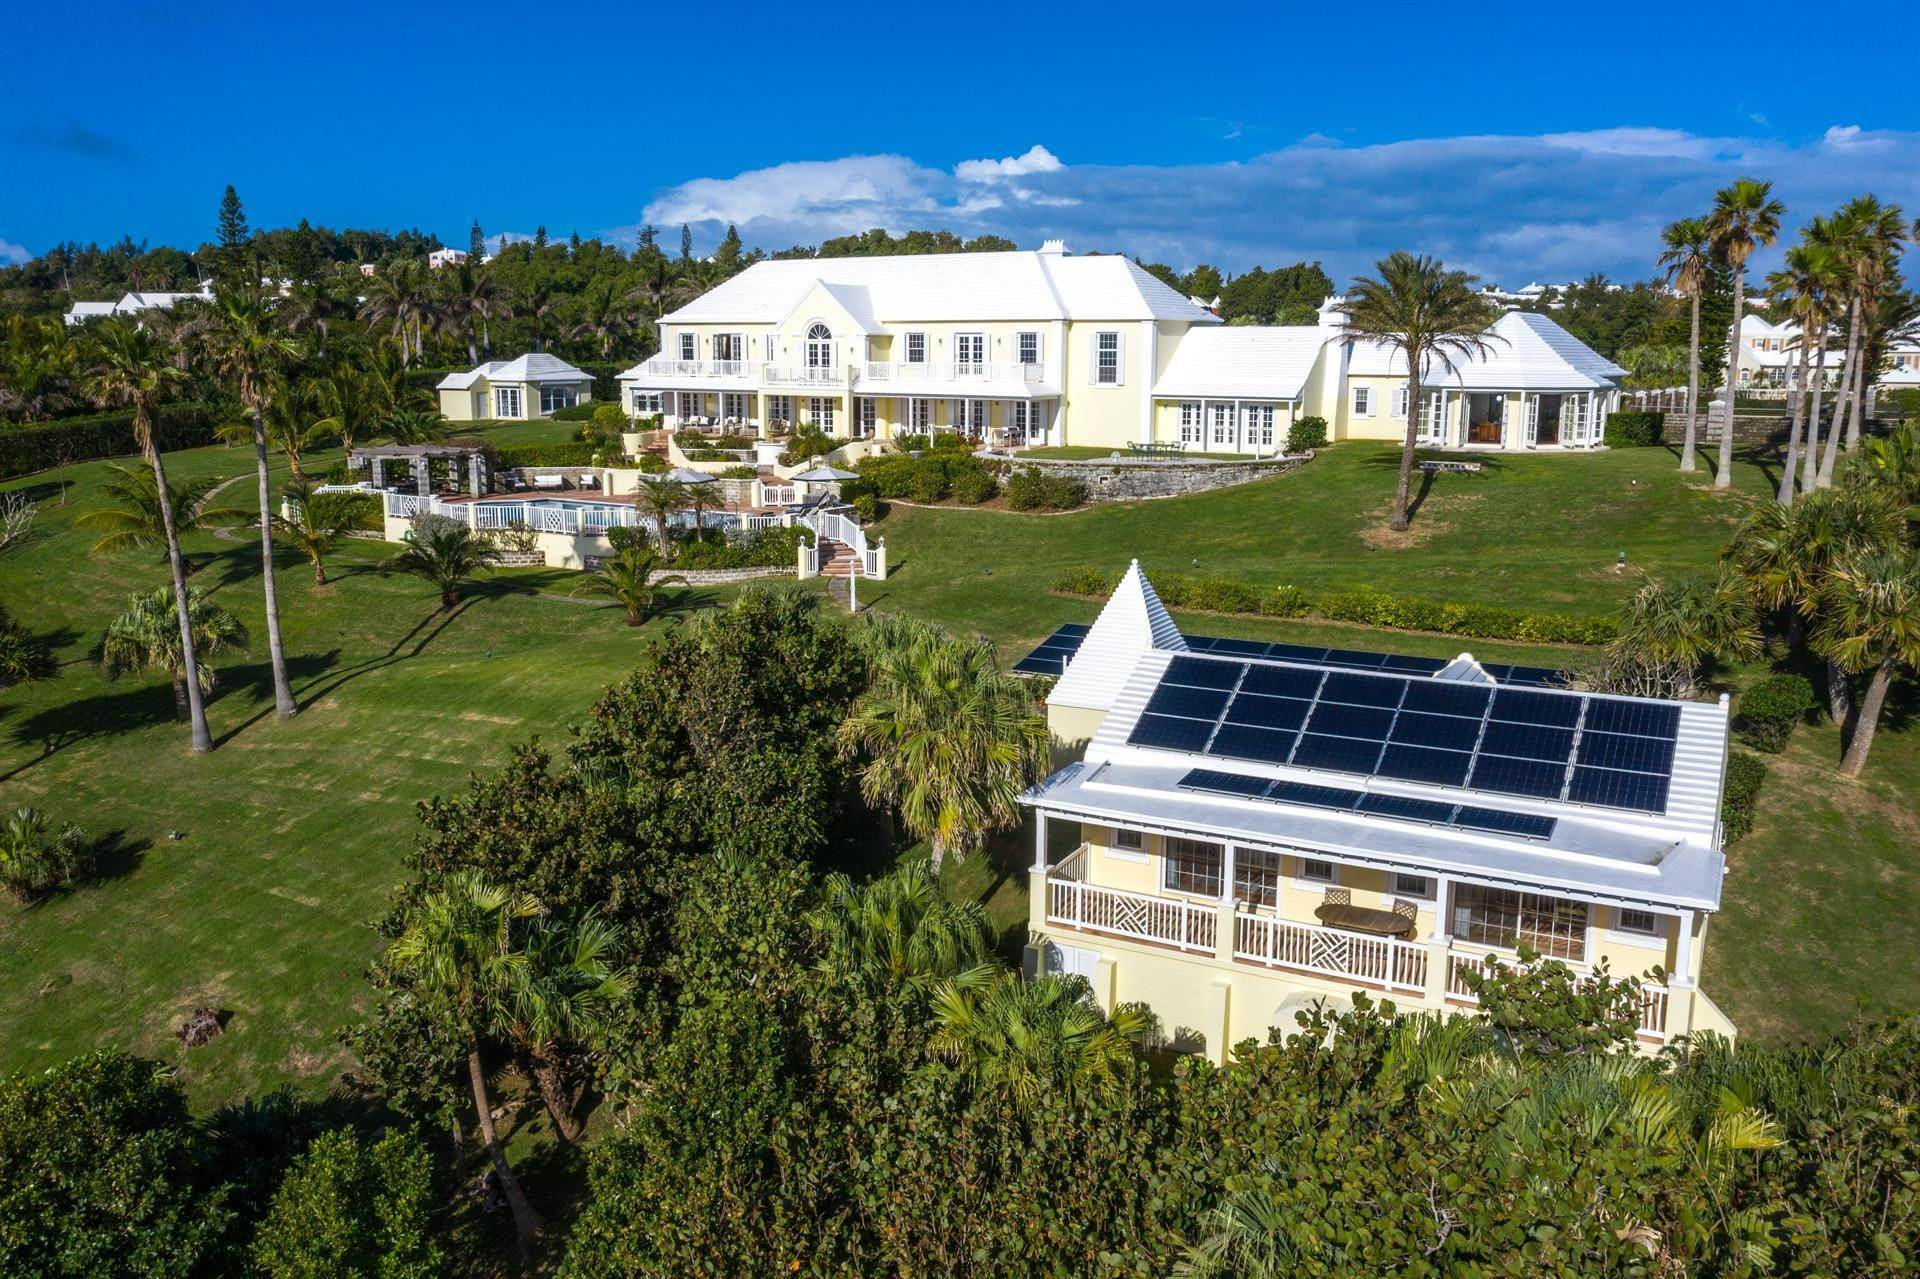 33. Waterfront Property for Sale at Agapanthus On Grape Bay Agapanthus On Grape Bay, 11 Inglewood Lane,Bermuda – Sinclair Realty